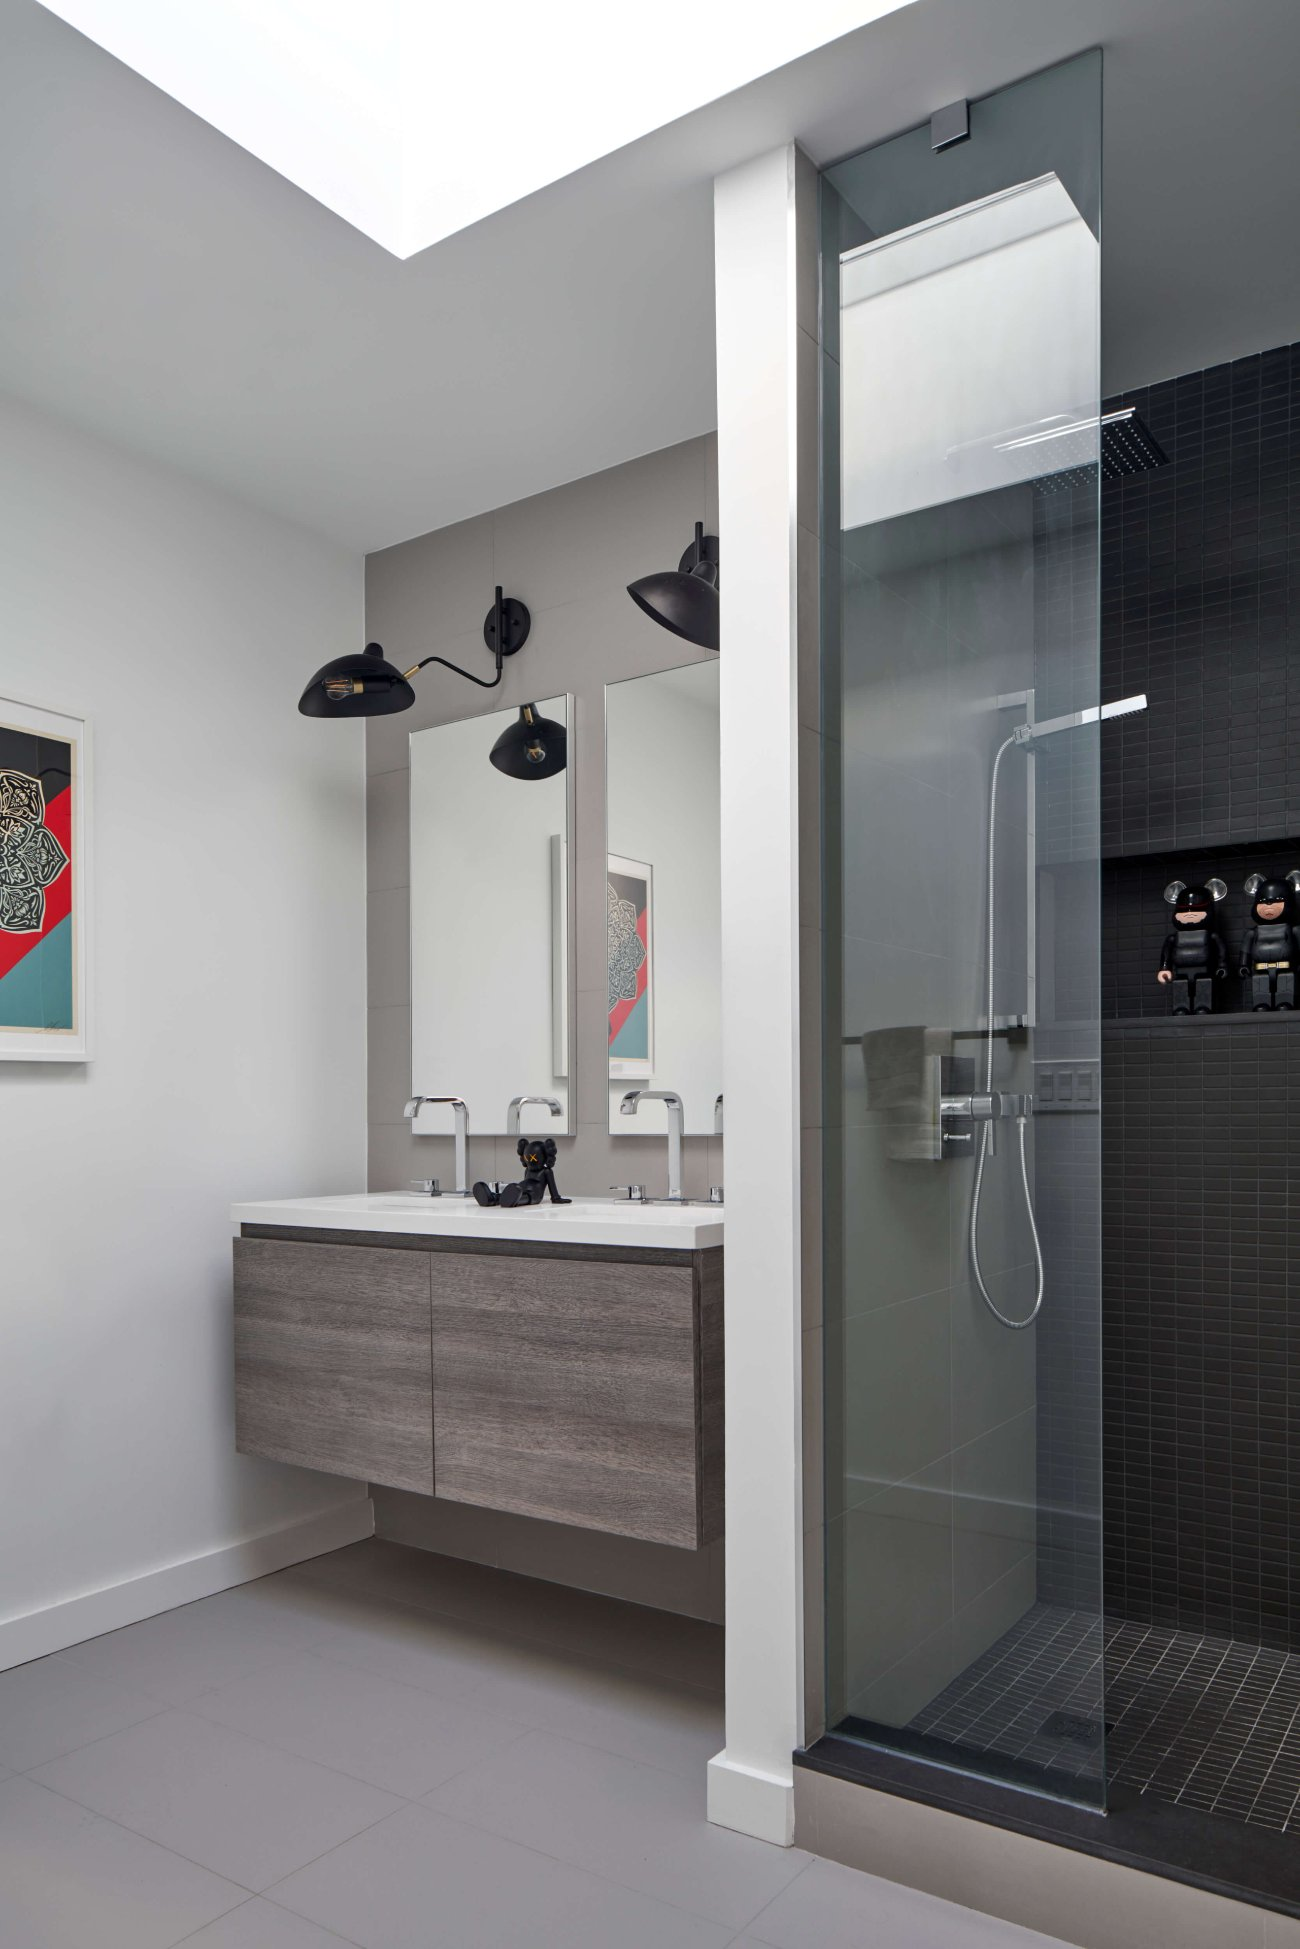 Robocop and Batman Bearbrick figures stand sentinel in shower niche.The vanity, by Scavolini, is topped with pure white Caesarstone. Fixtures by Grohe; wall lamps from Dark Tools.